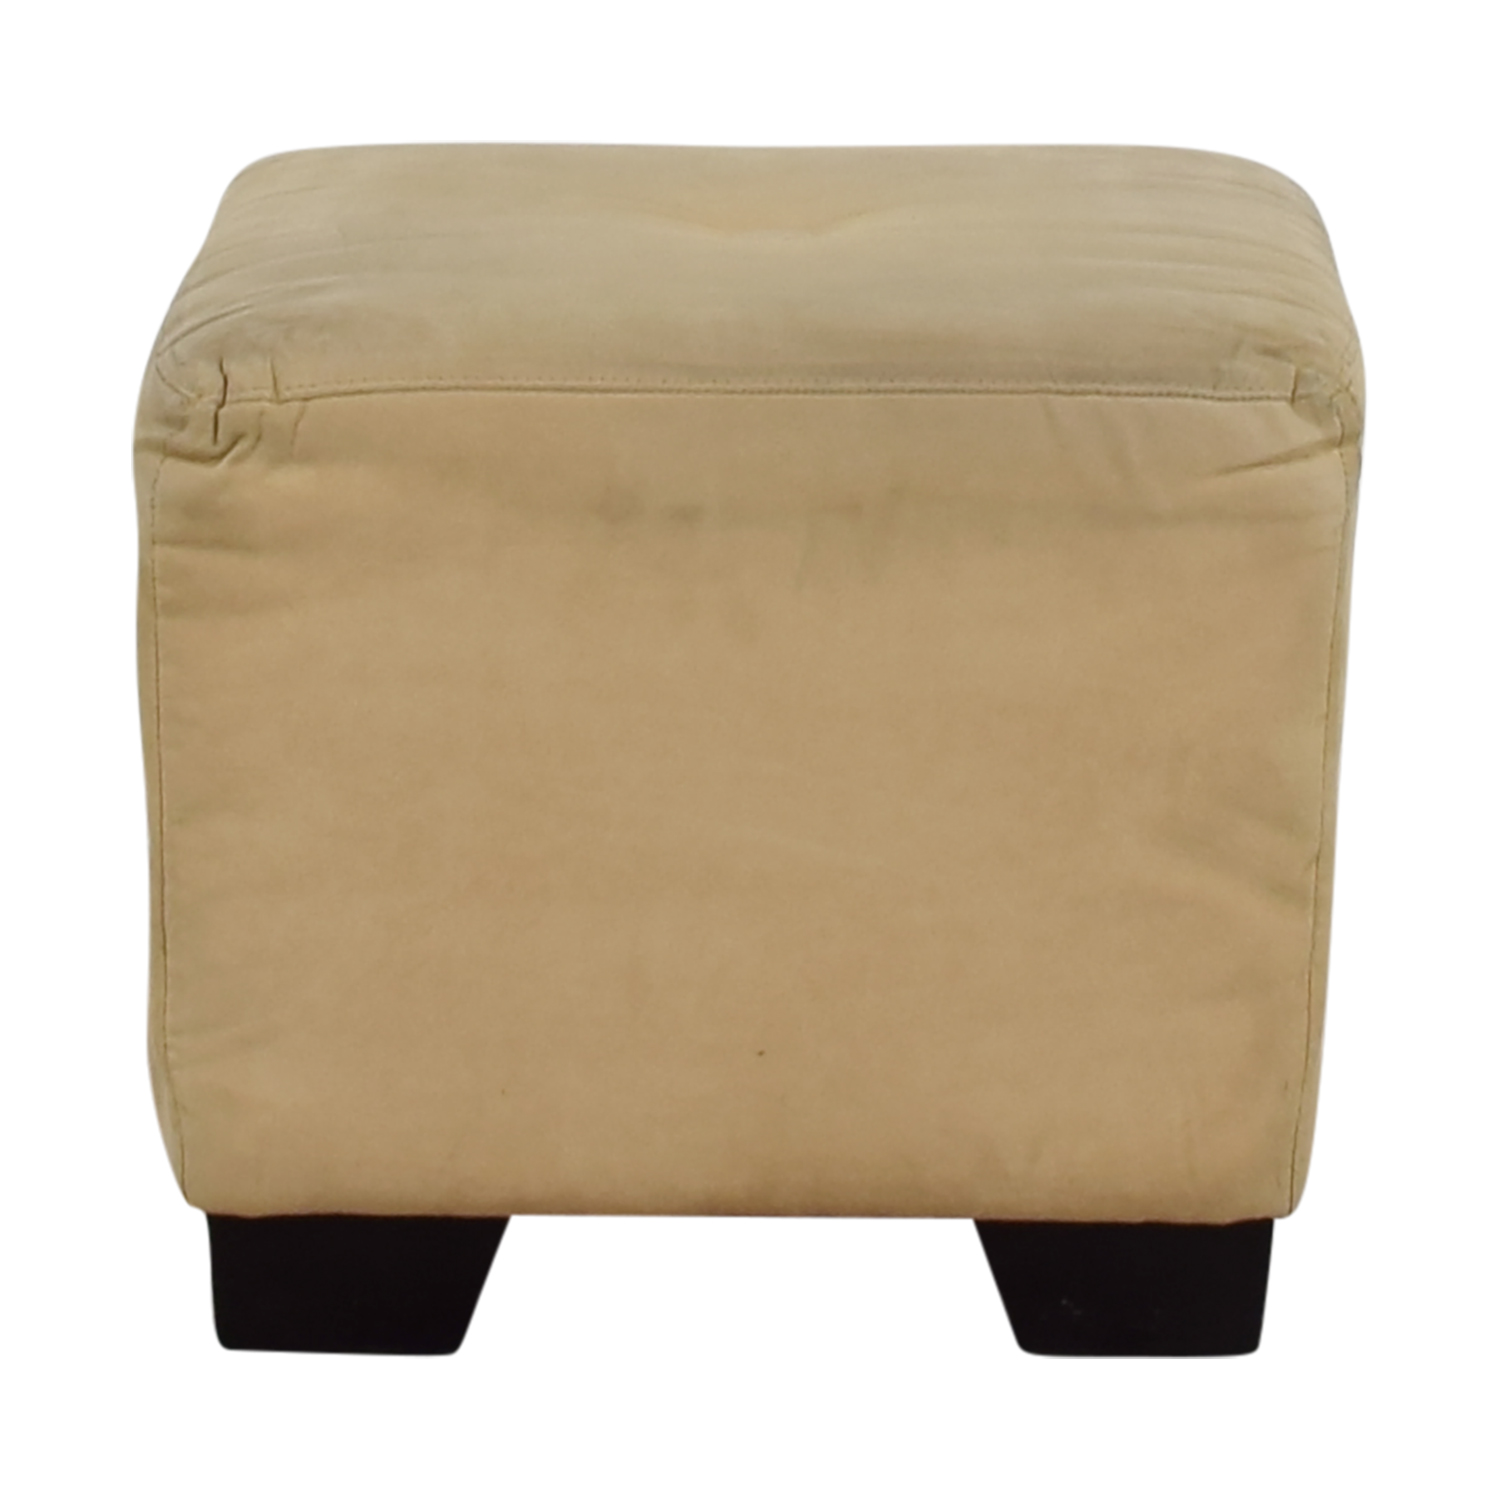 Sherrill Furniture Sherrill Furniture Beige Square Ottoman coupon